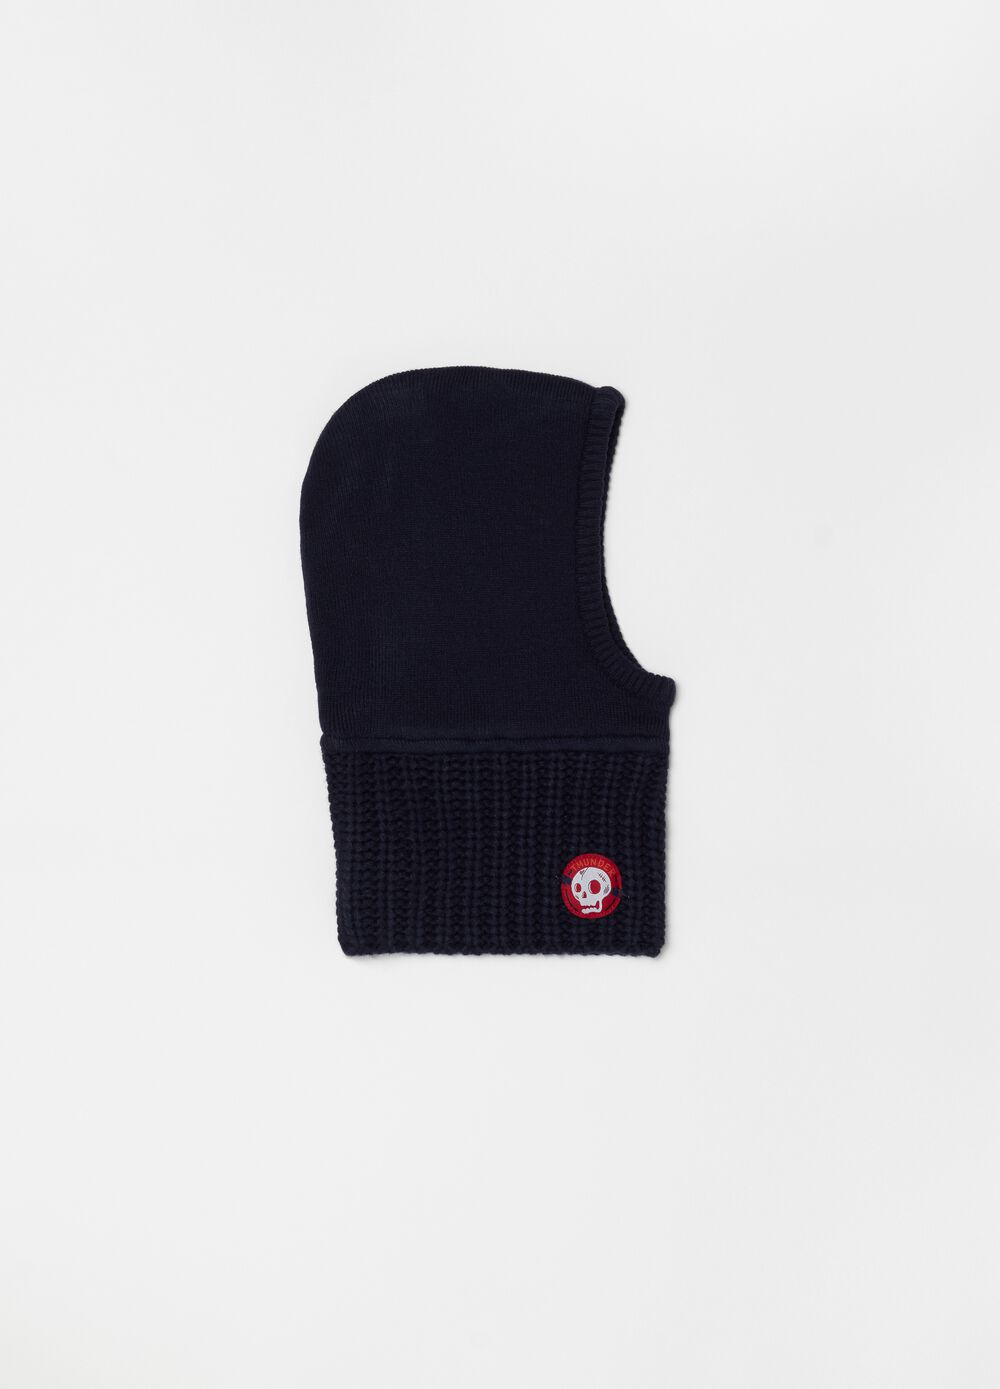 Hat with neck cover and patch